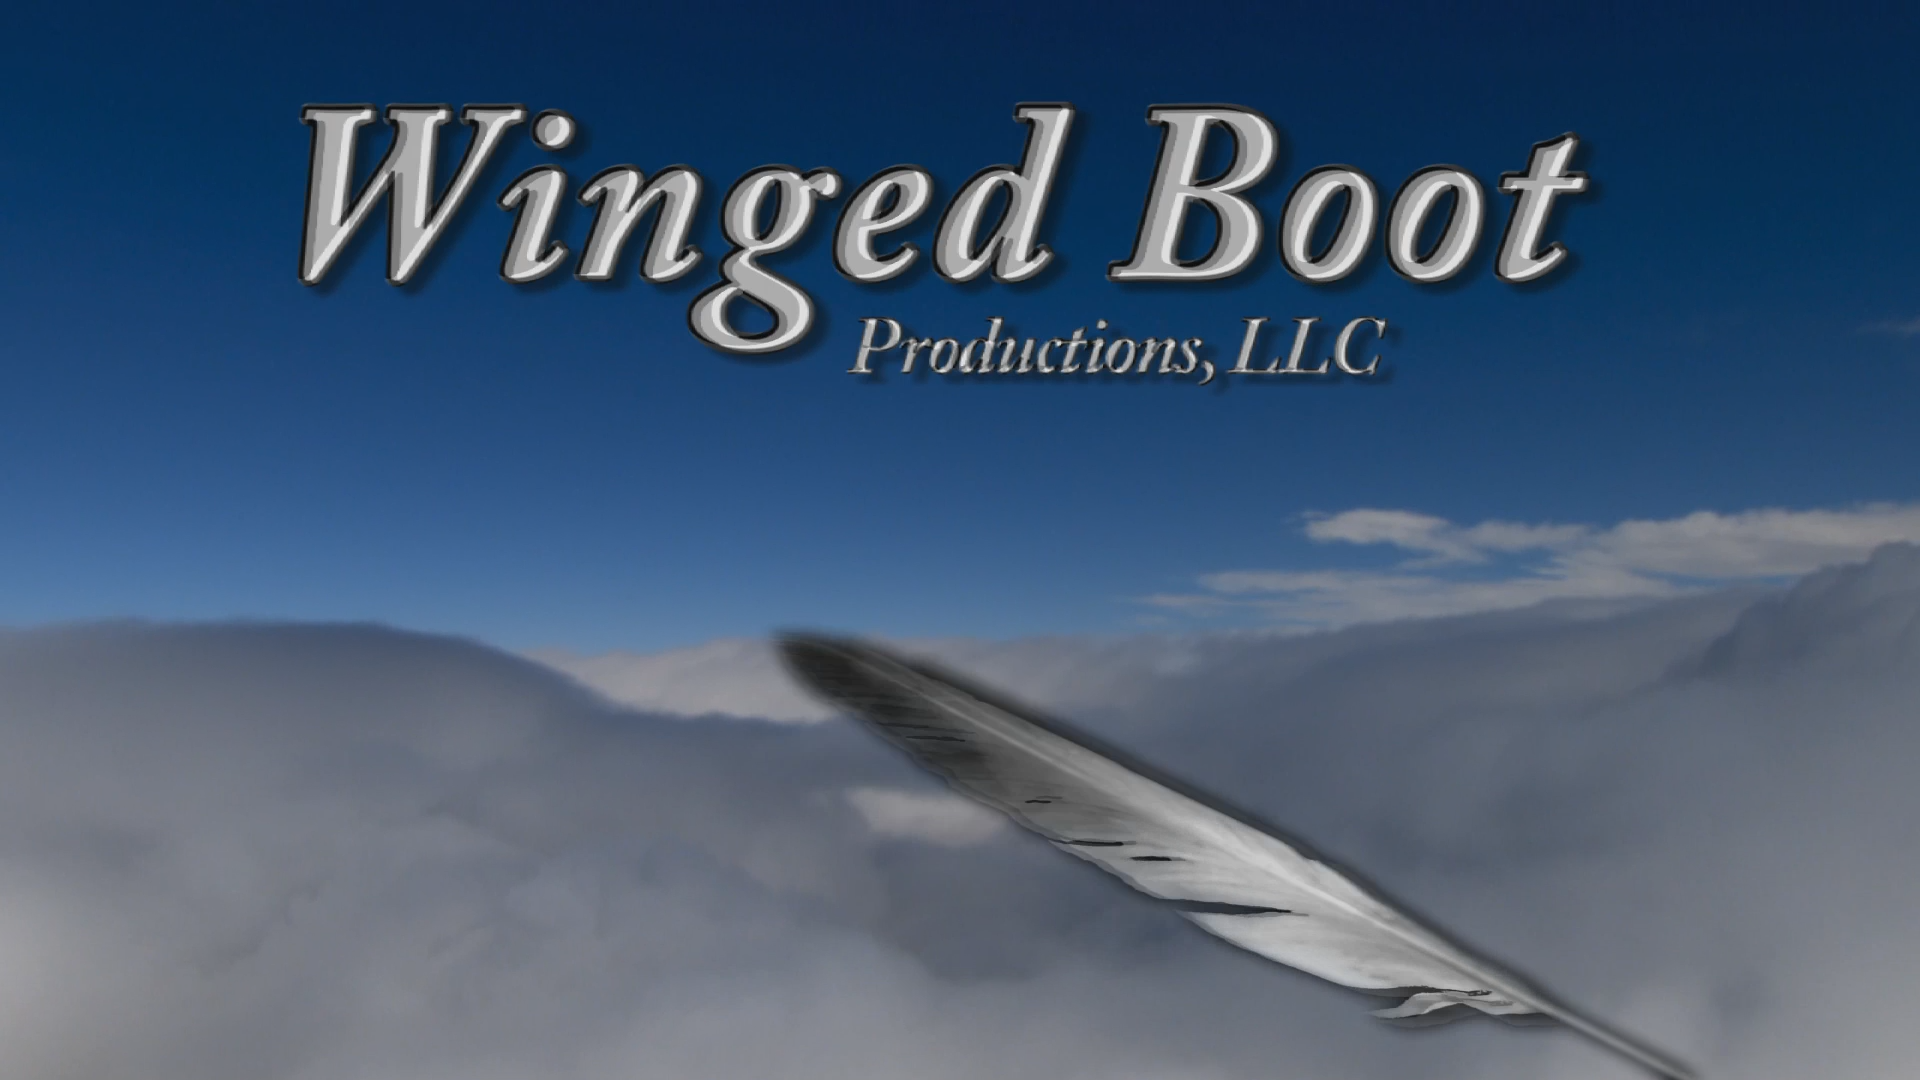 Winged Boot Productions logo